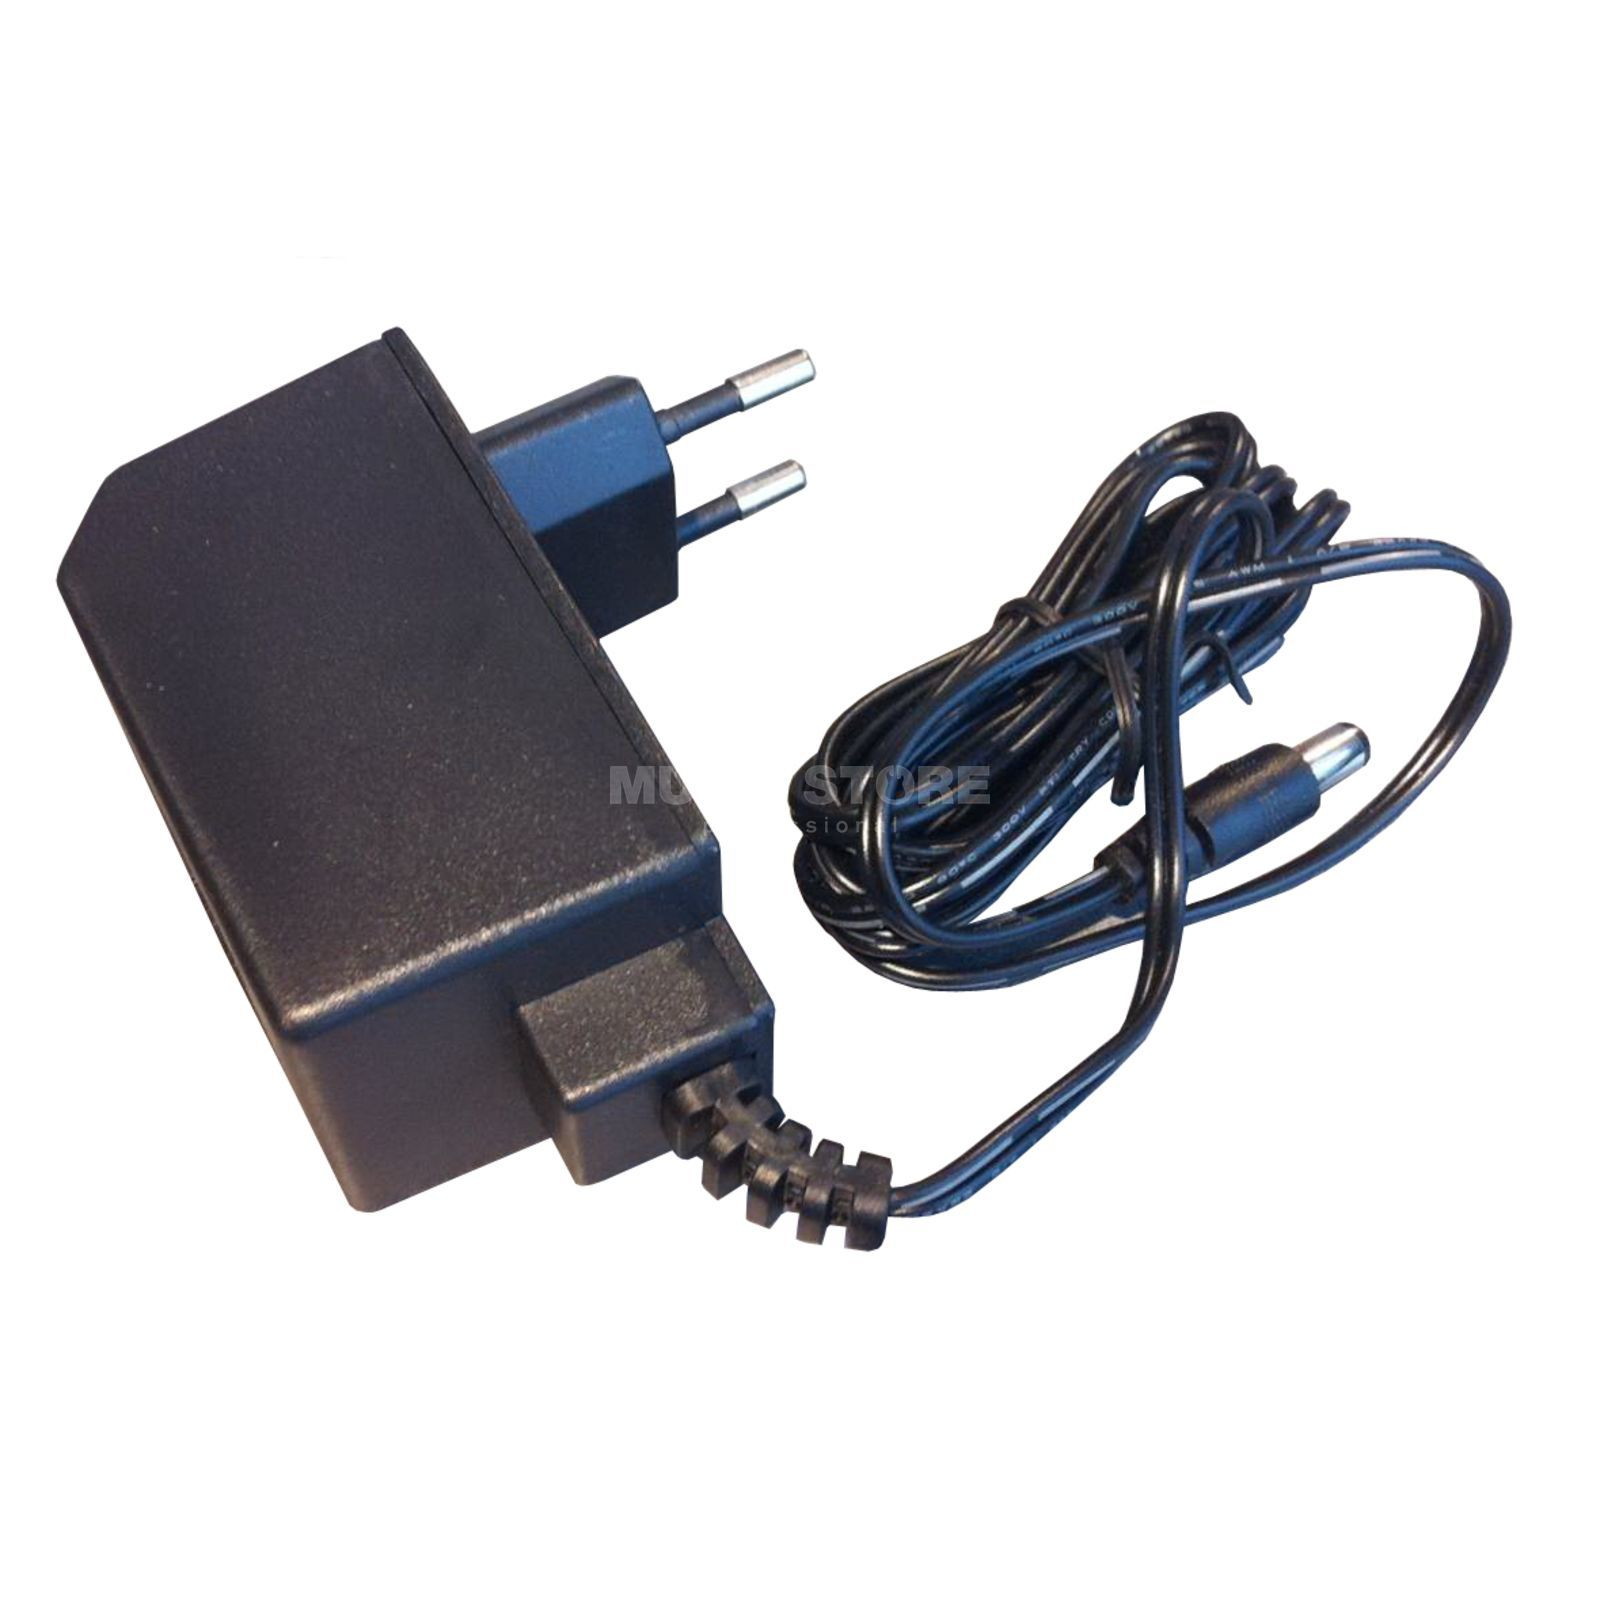 Alesis Power Adapter for DM 5 Sound Module Produktbillede